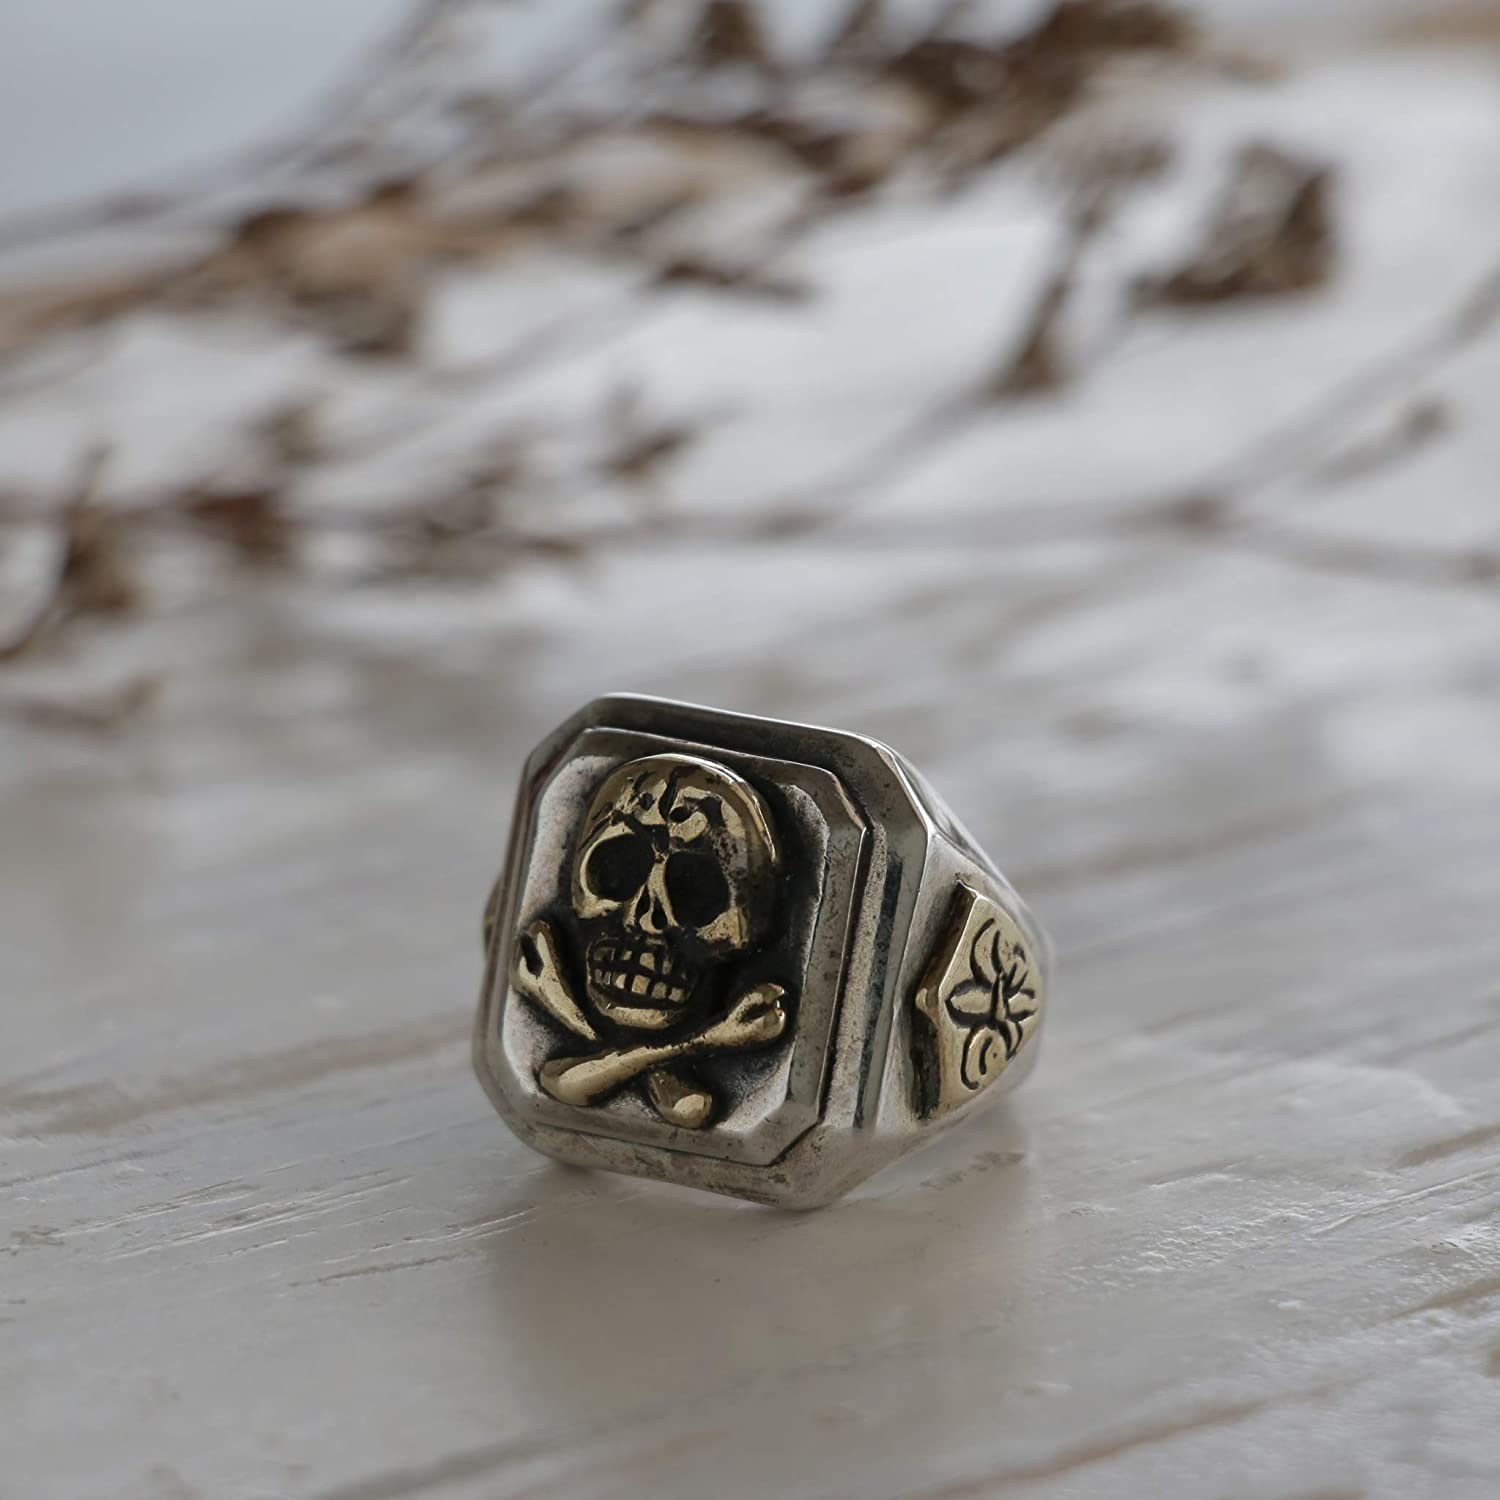 Handmade Mexican Sterling Silver Vintage Style Pirate Skull and Crossbones Caribbean Ring - DeluxeAdultCostumes.com